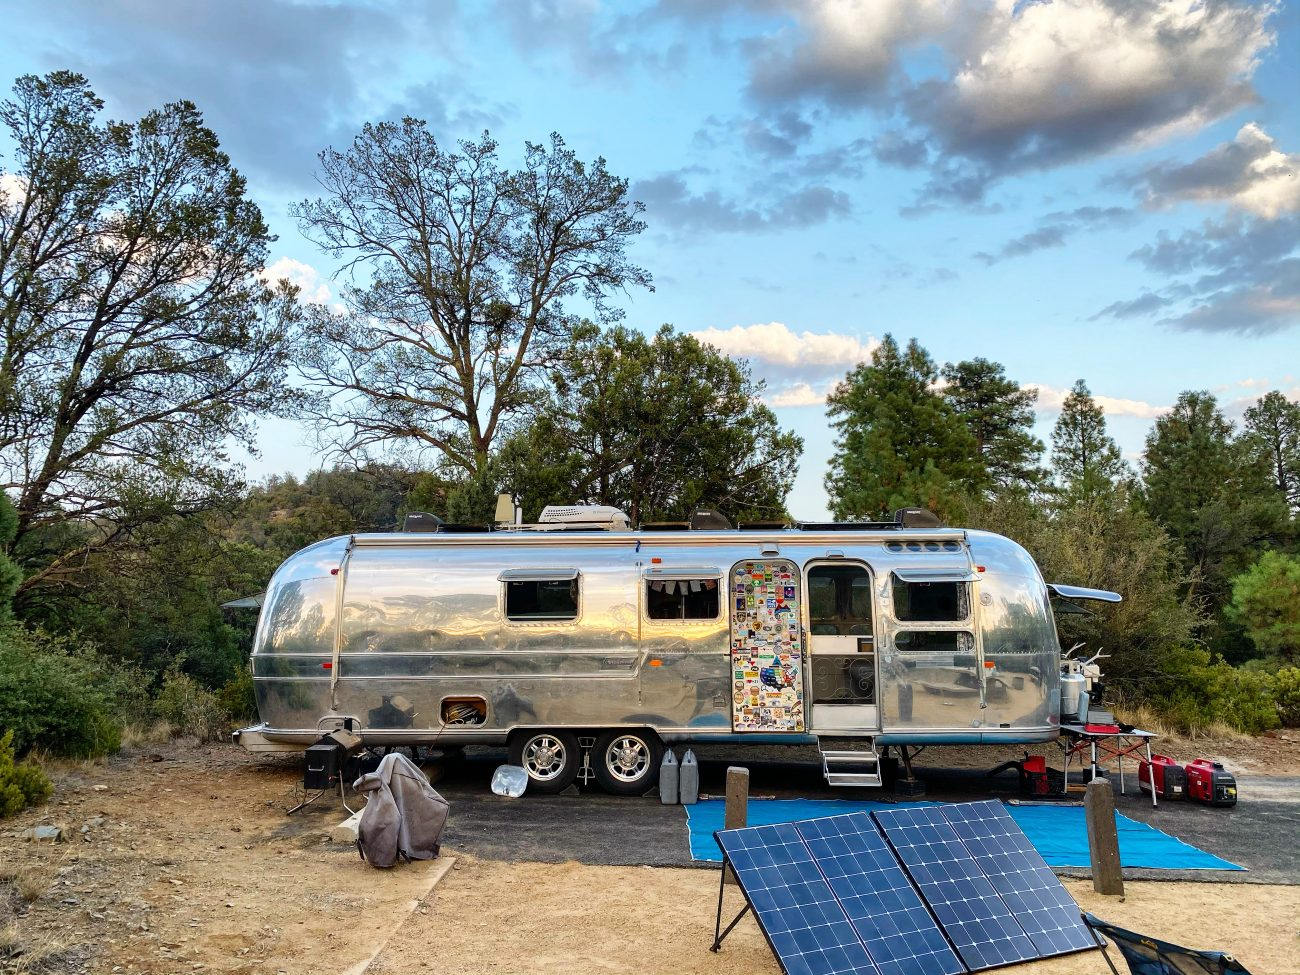 Using two Renogy 200W Solar Suitcases to power our Airstream.